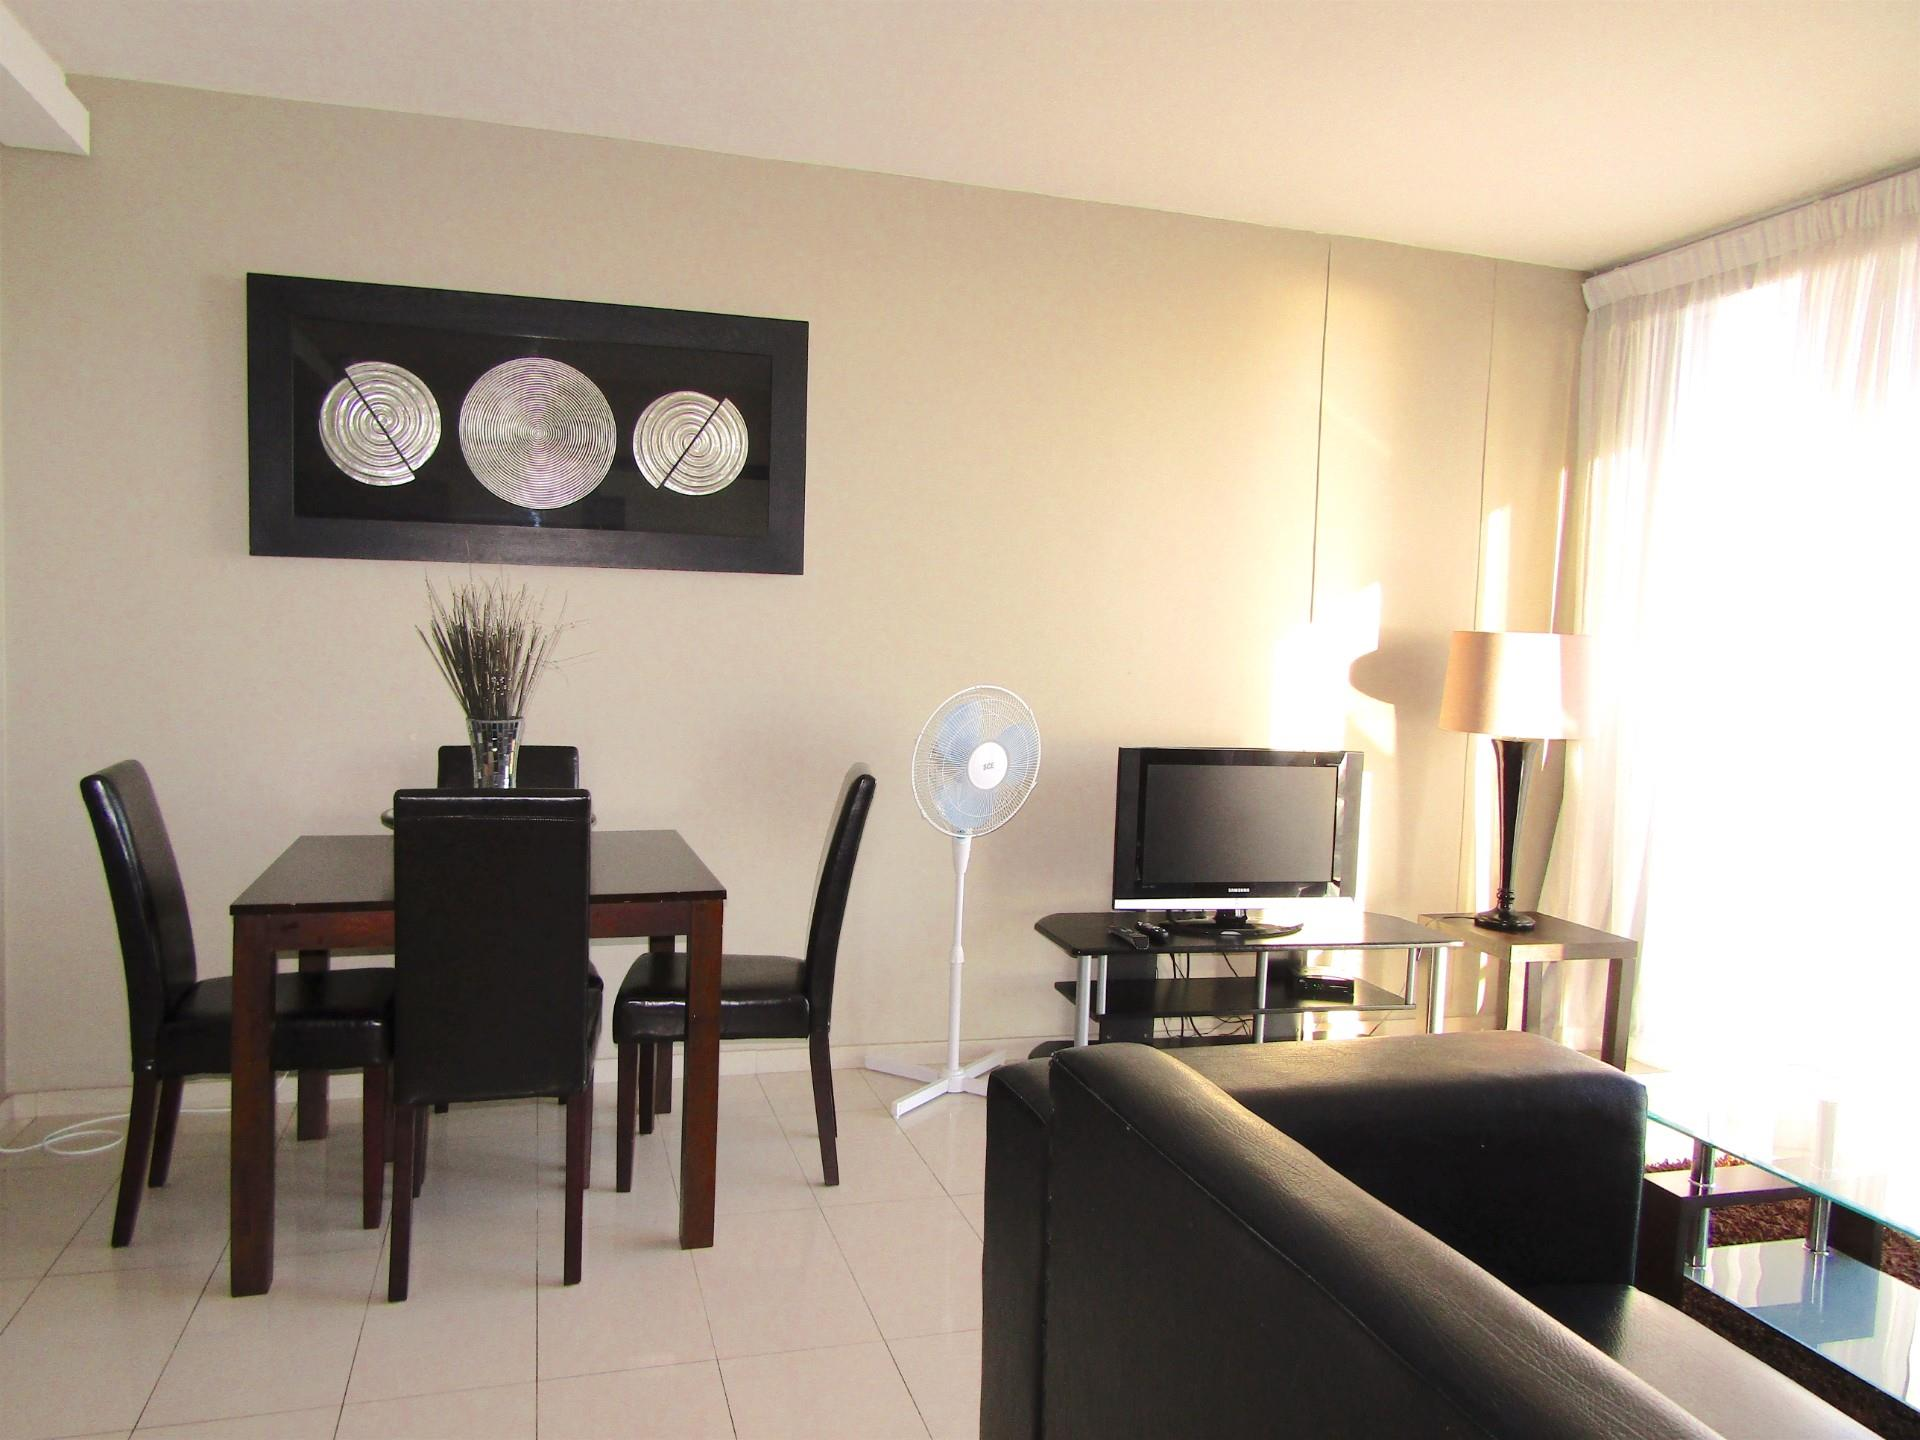 2 Bedroom Apartment / Flat For Sale in Bloubergrant